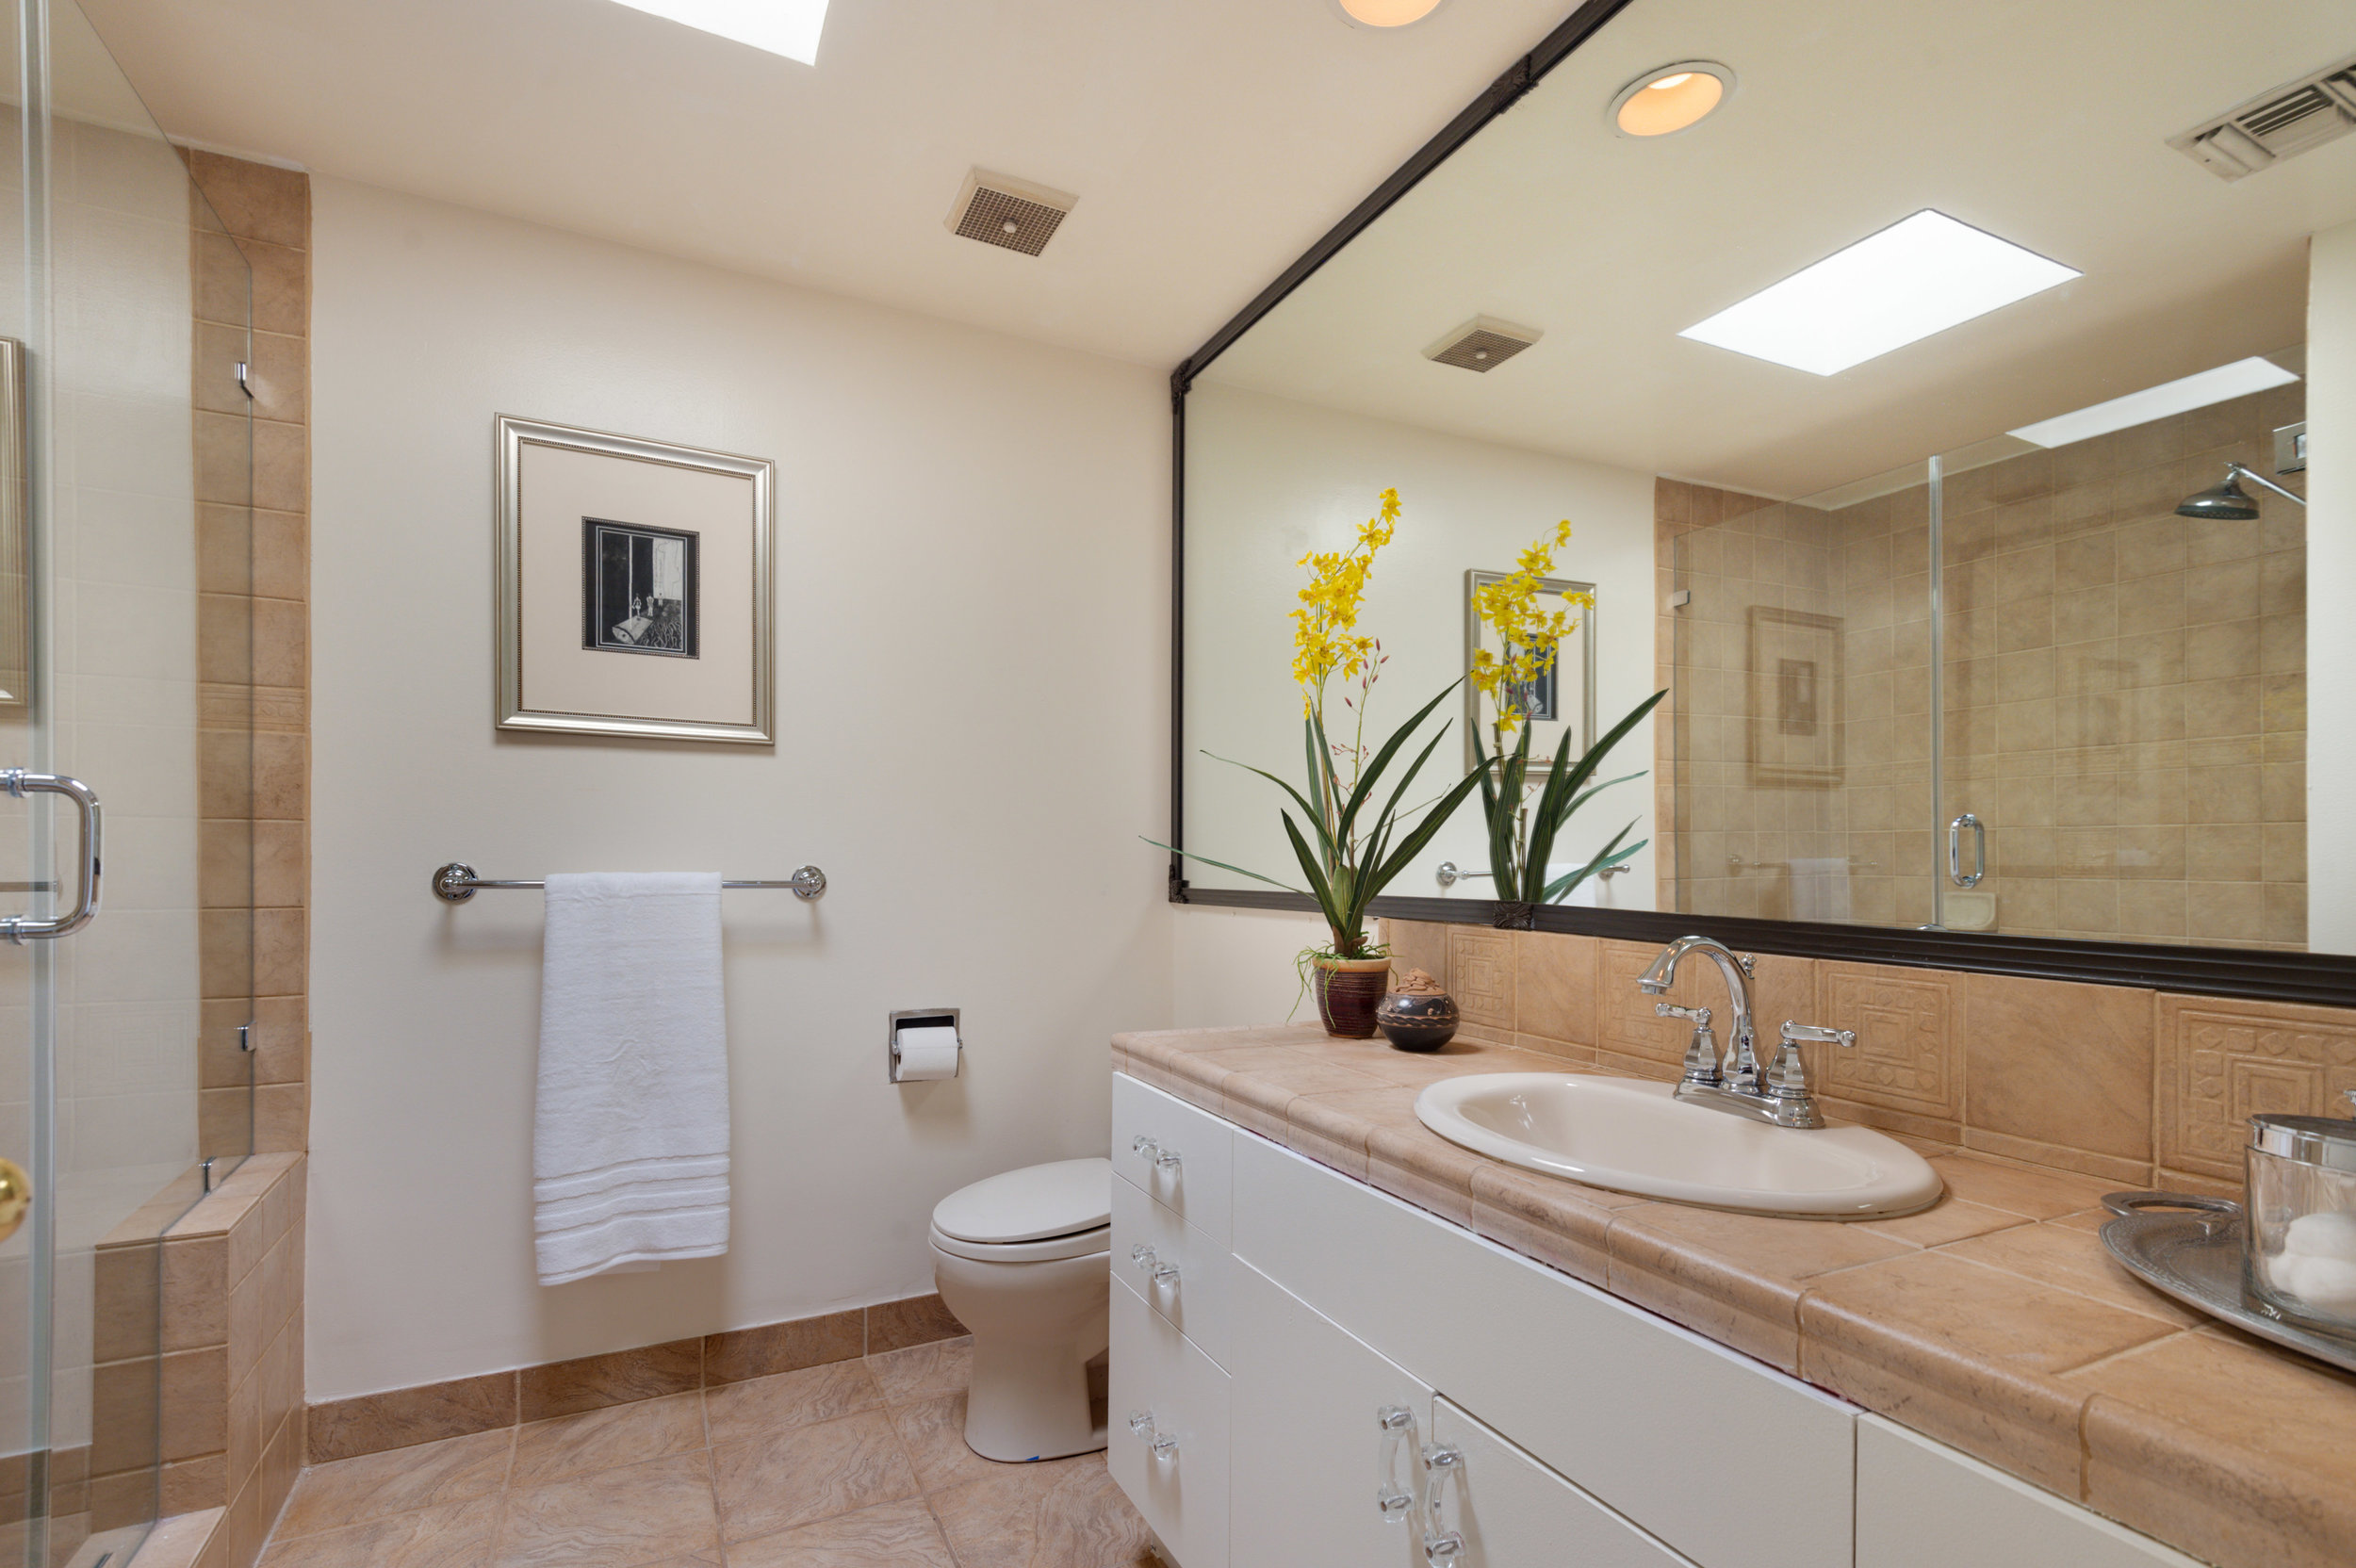 020 Bathroom 12027 Talus Place Beverly Hills 90210 For Sale Lease The Malibu Life Team Luxury Real Estate.jpg